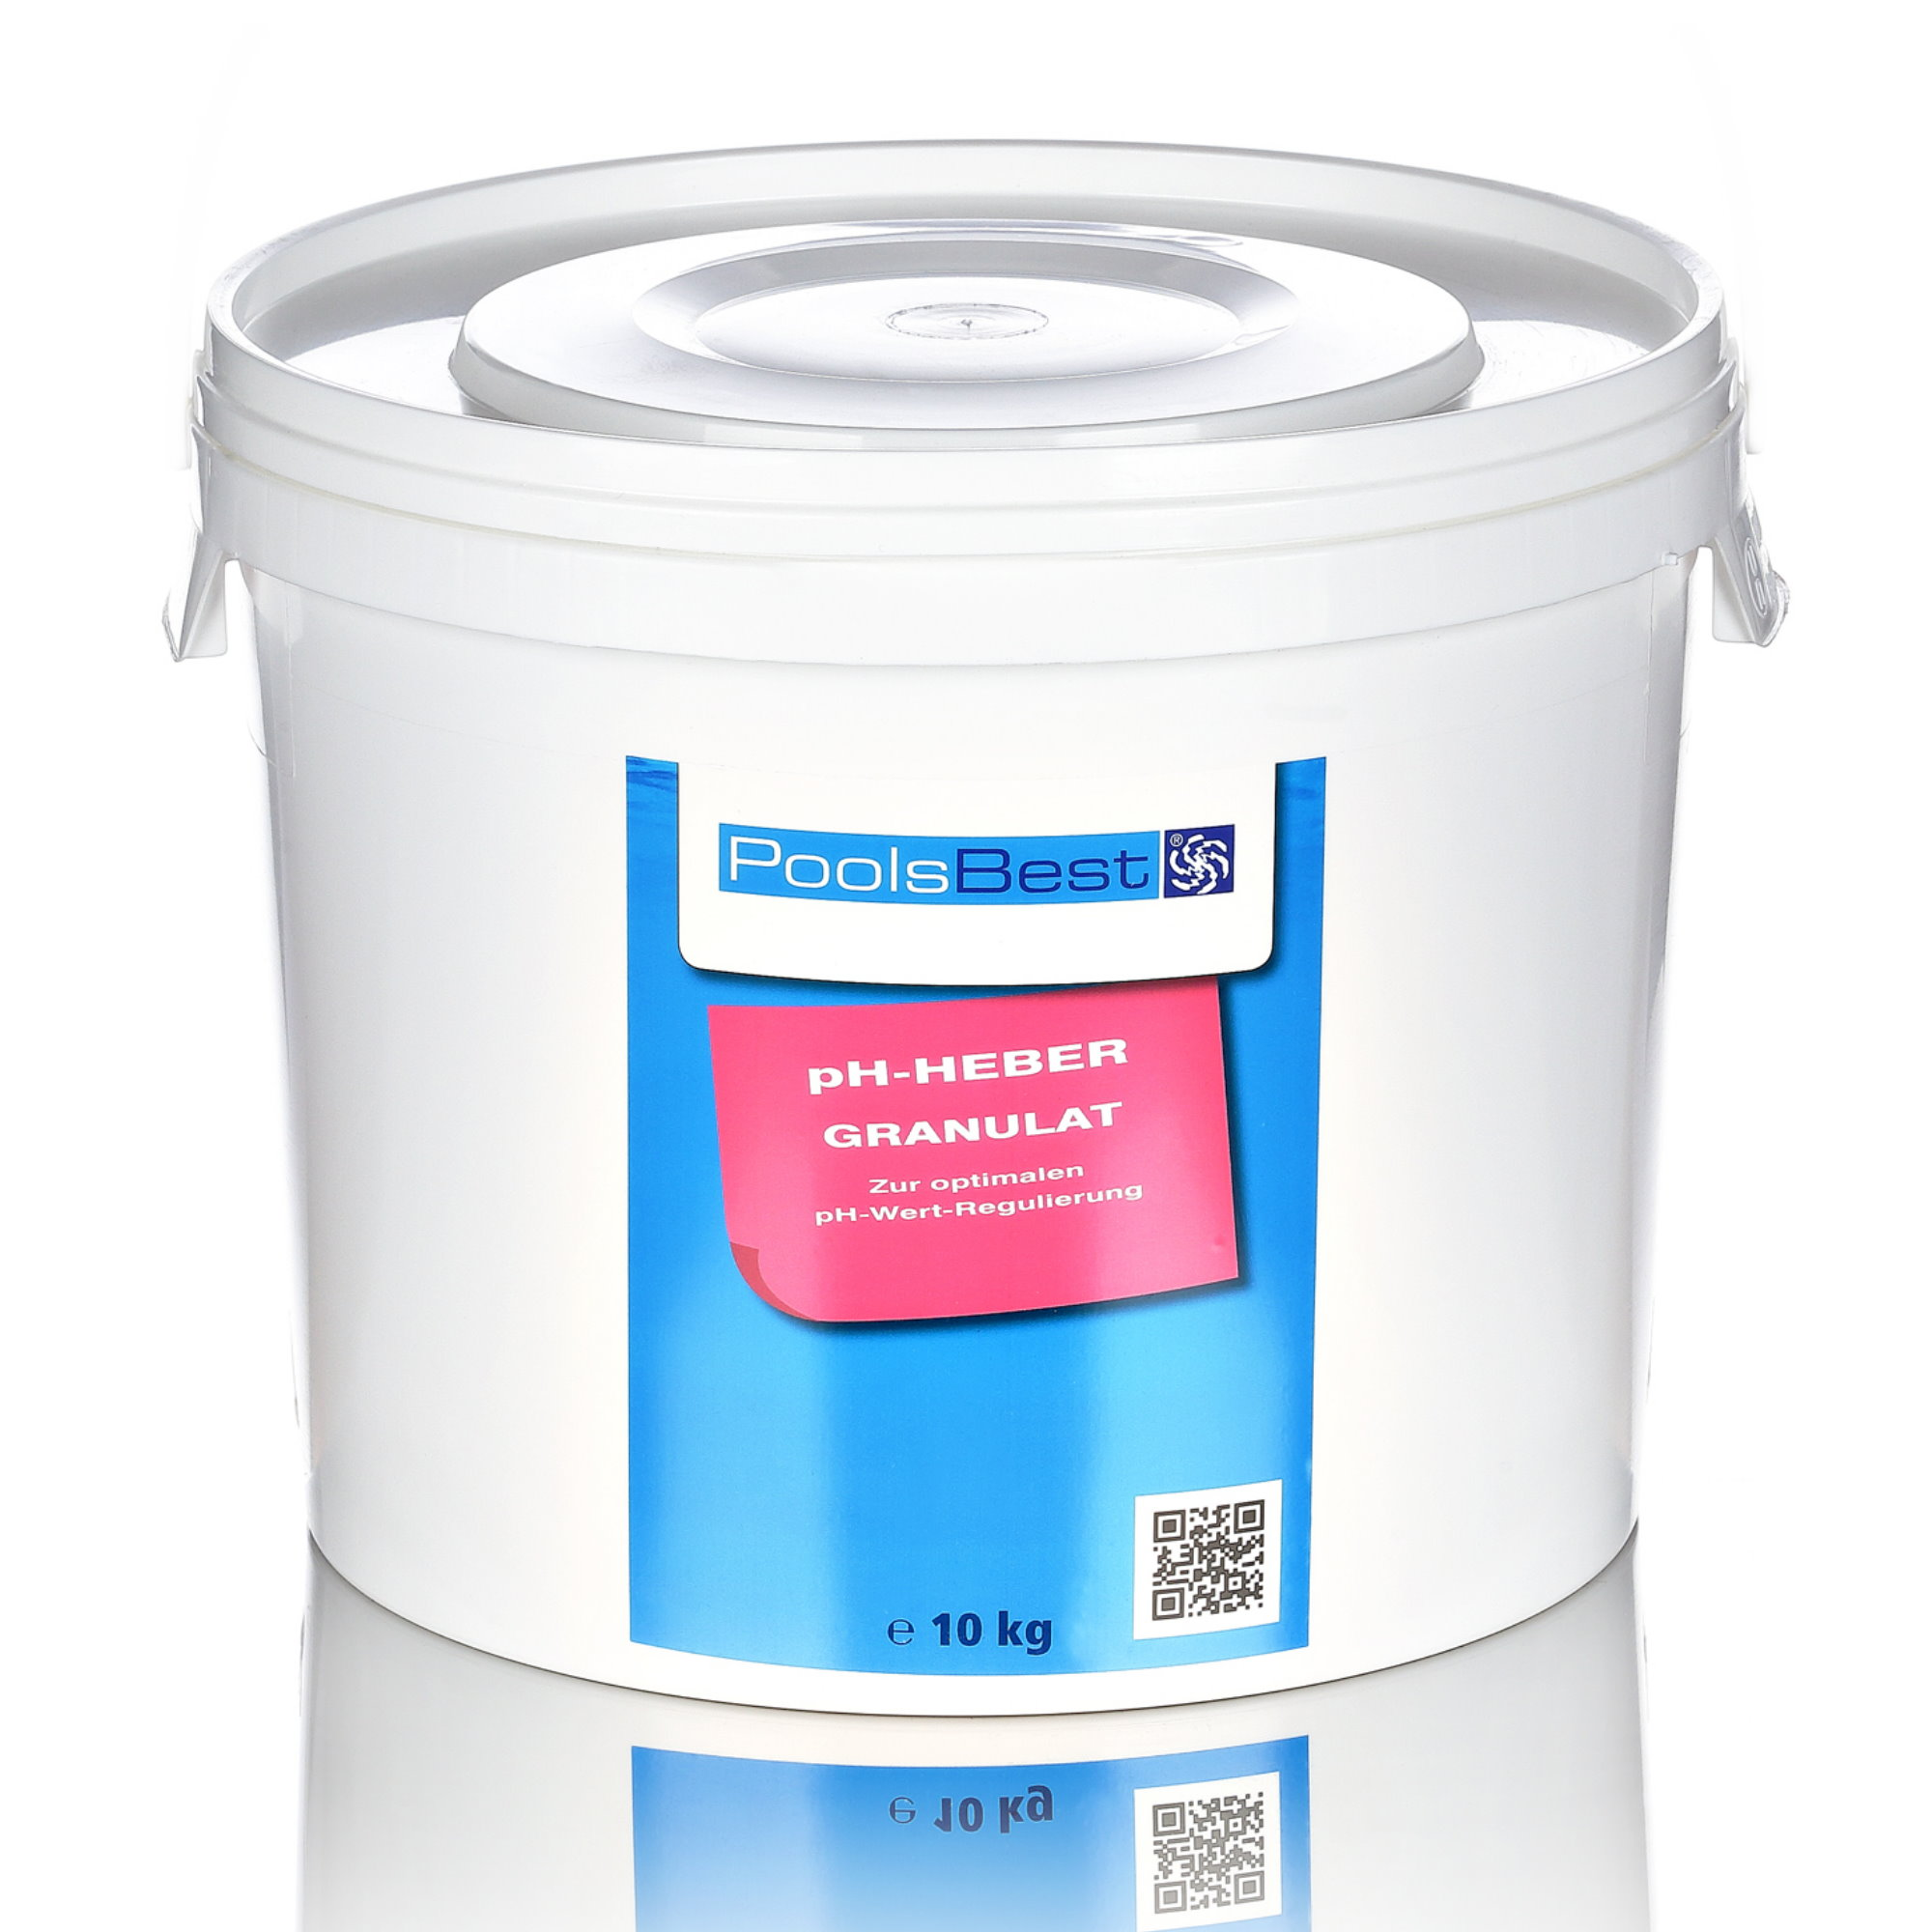 Multitabs Pool 5 Kg 10 Kg - Poolsbest® Ph-heber Granulat | Pool-chlor-shop